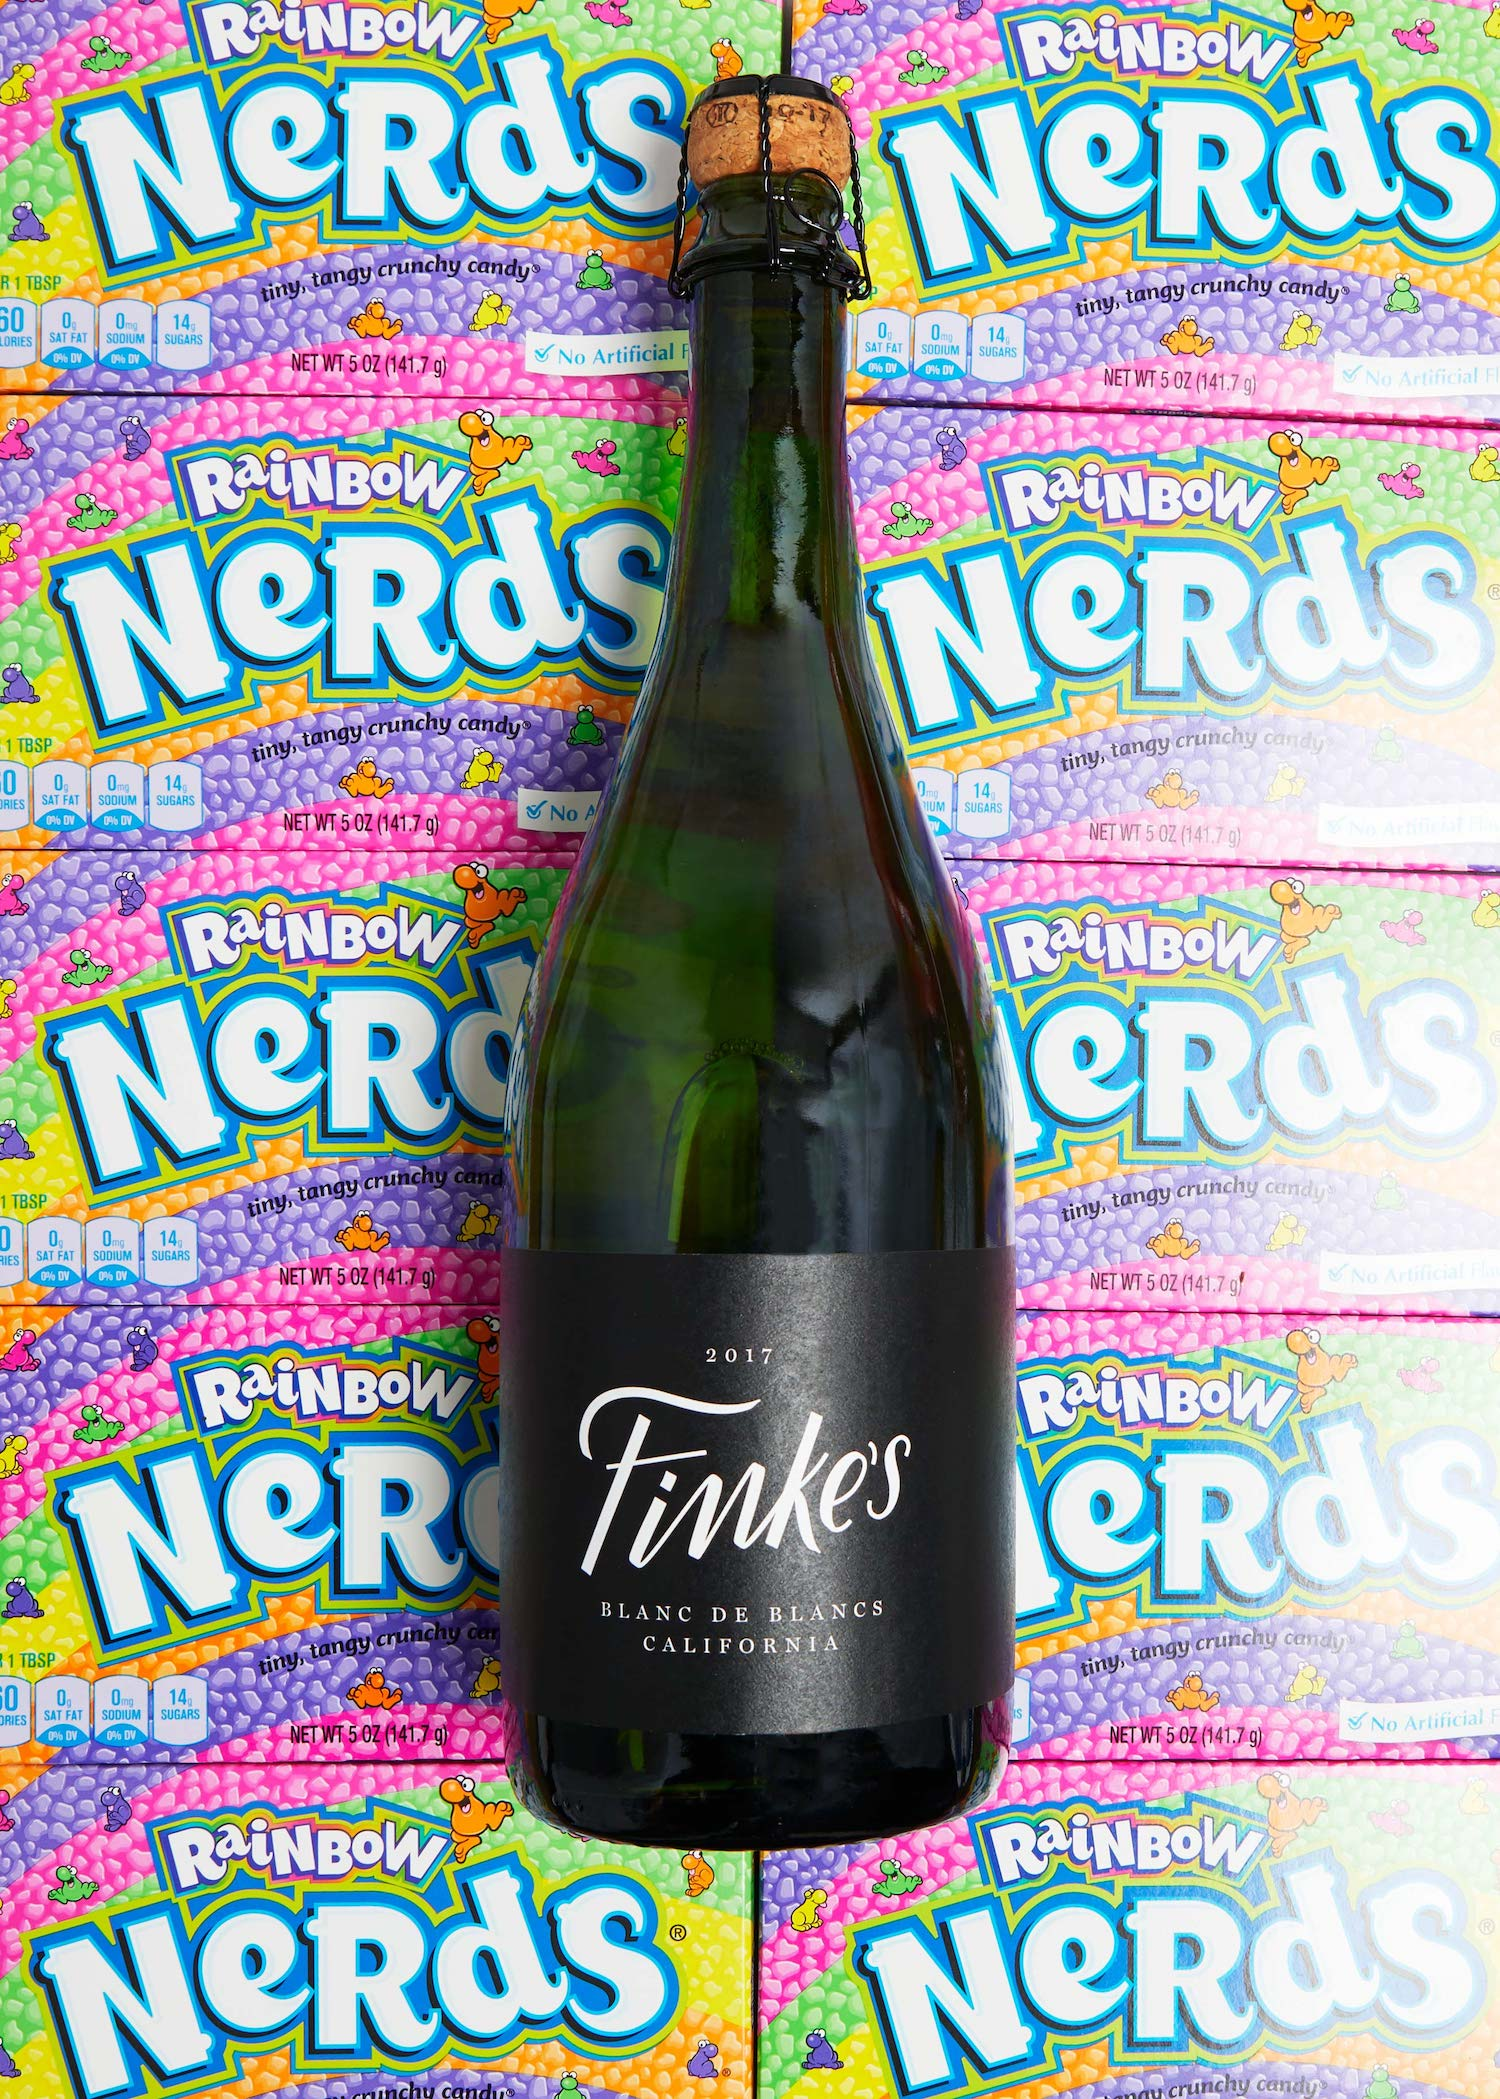 Nerds candy and wine